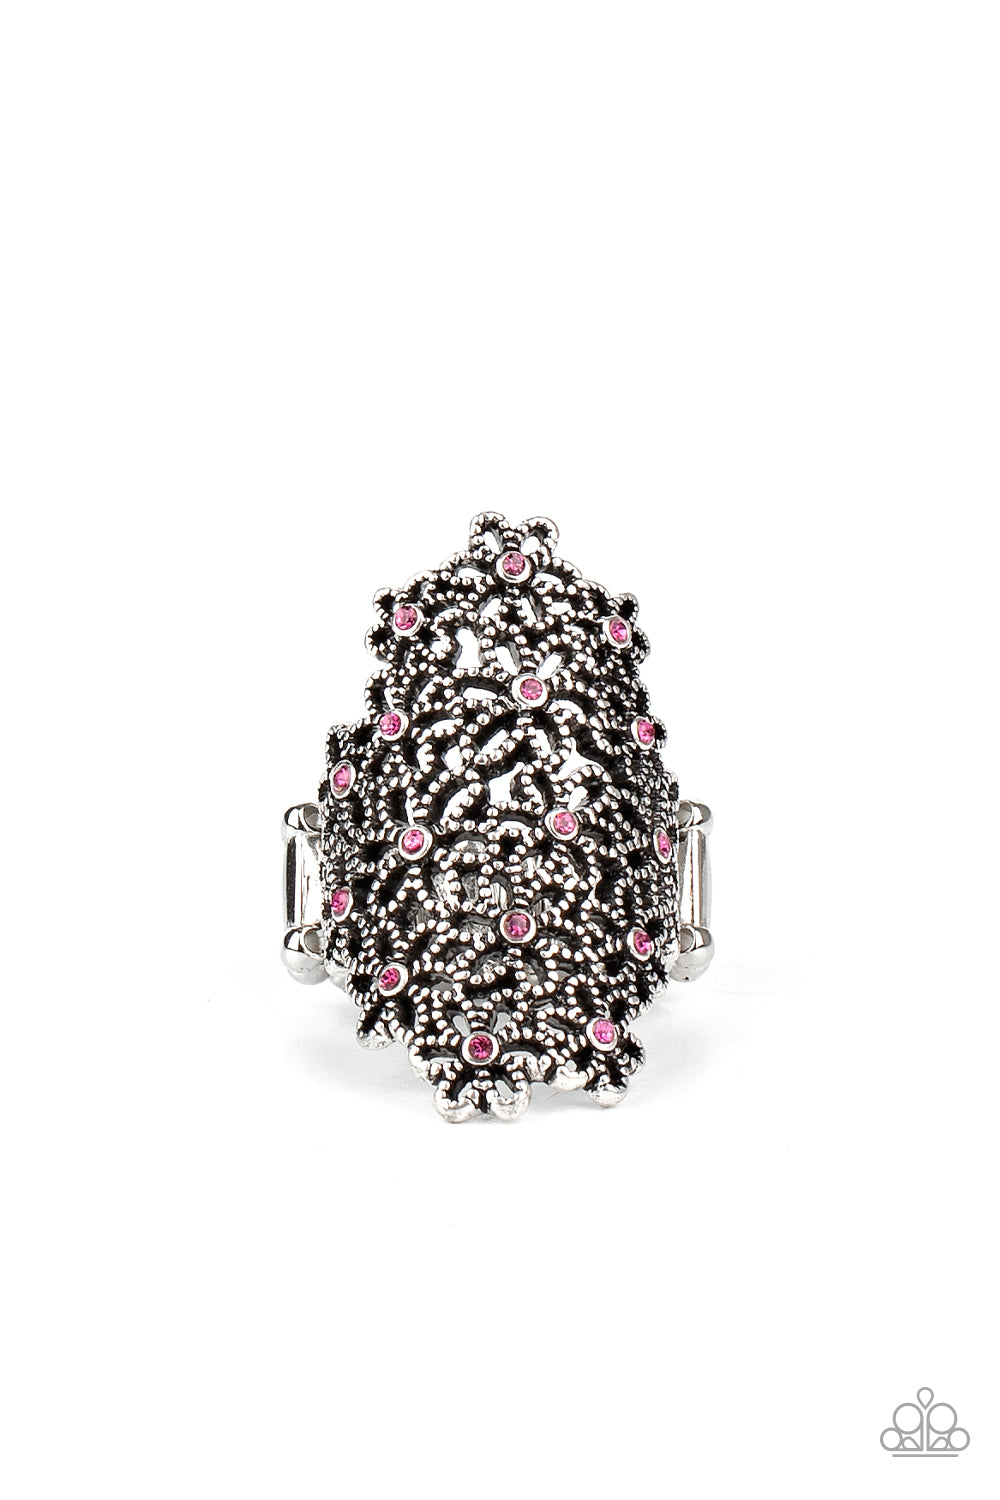 five-dollar-jewelry-youre-a-sunflower-pink-ring-paparazzi-accessories